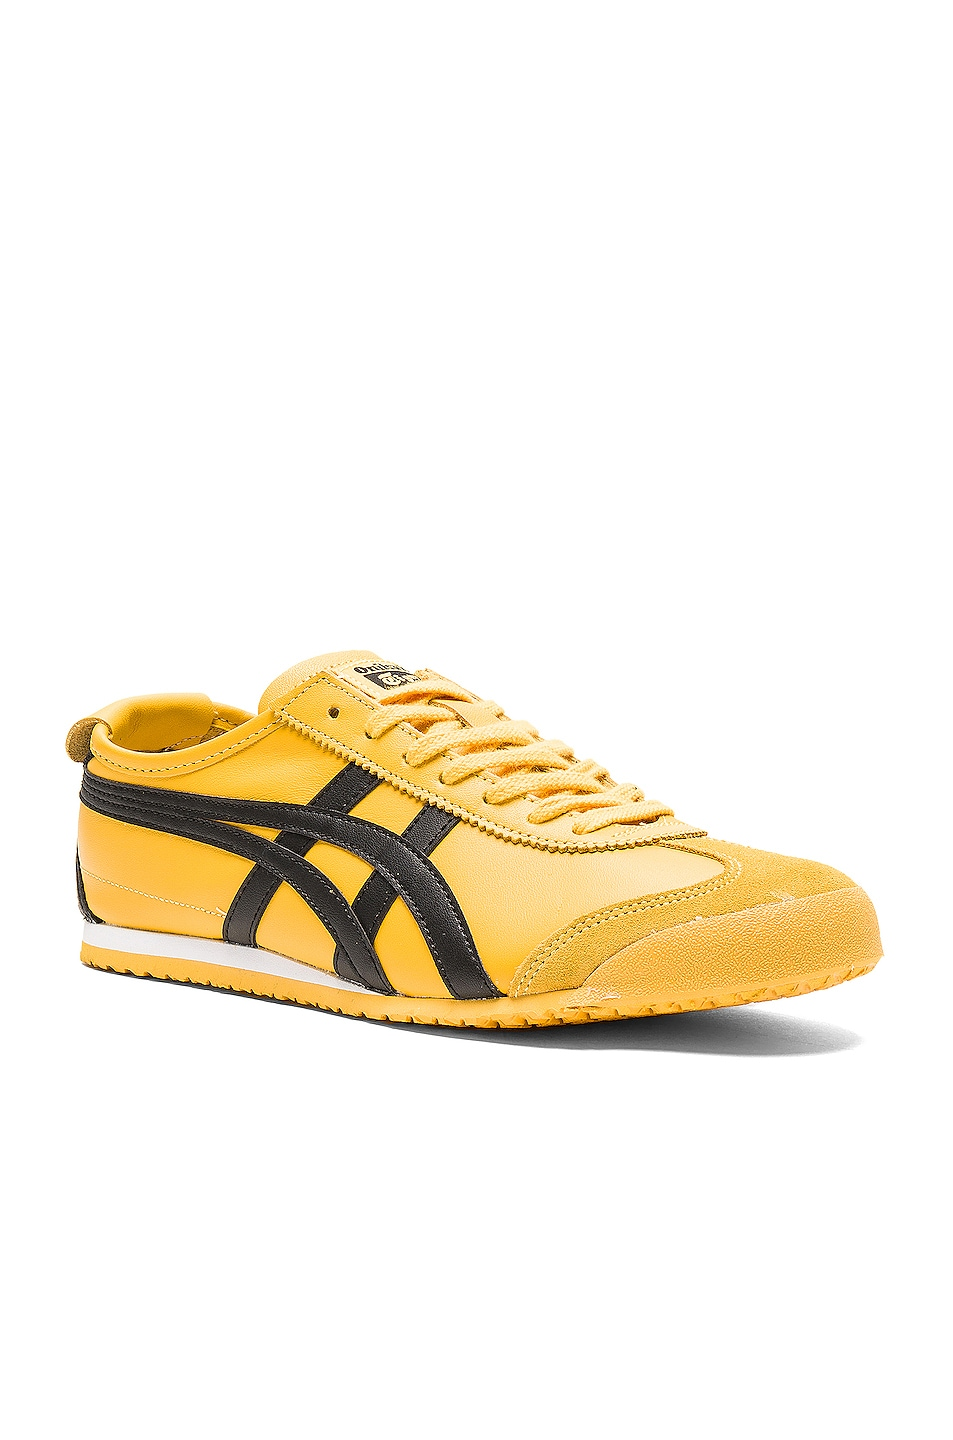 Image 2 of Onitsuka Tiger Mexico 66 in Yellow Black